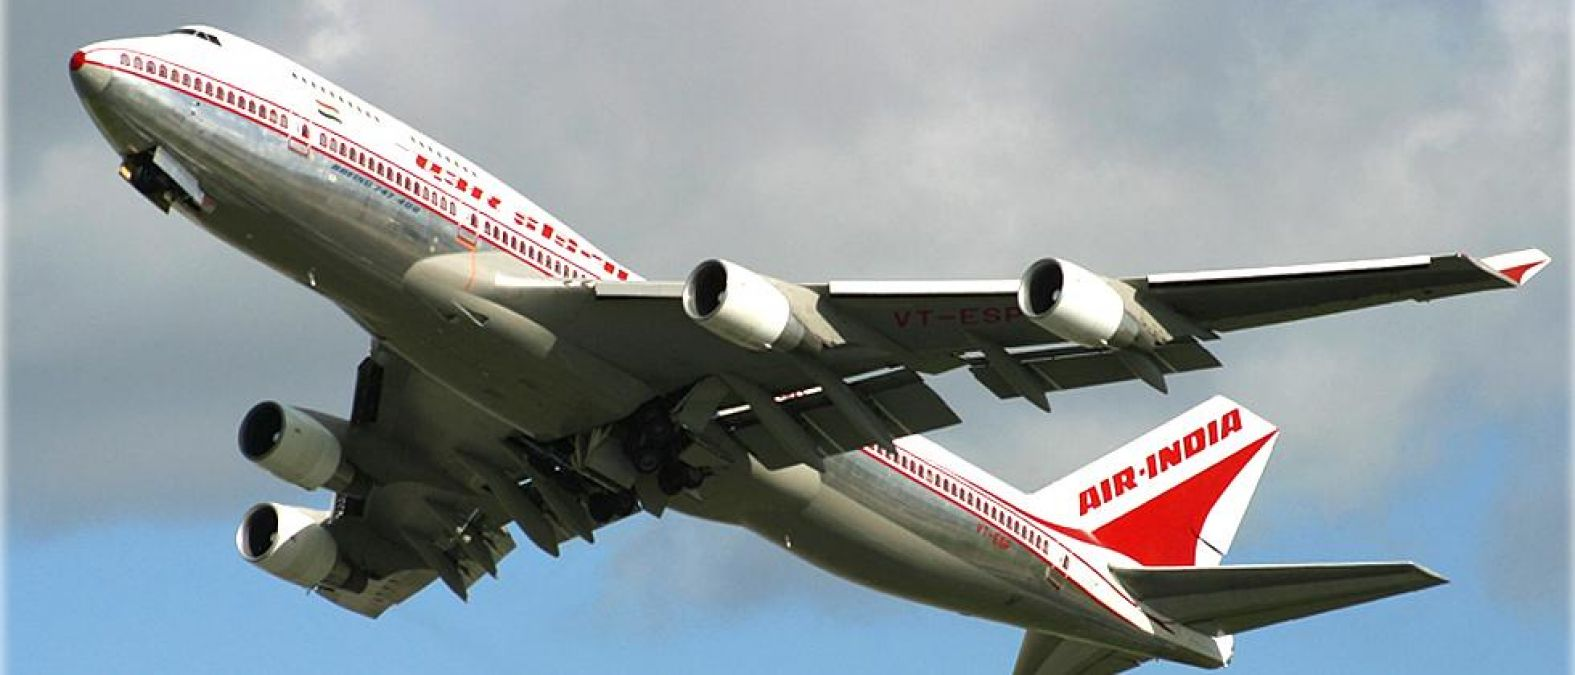 Air India took this step to resolve debt